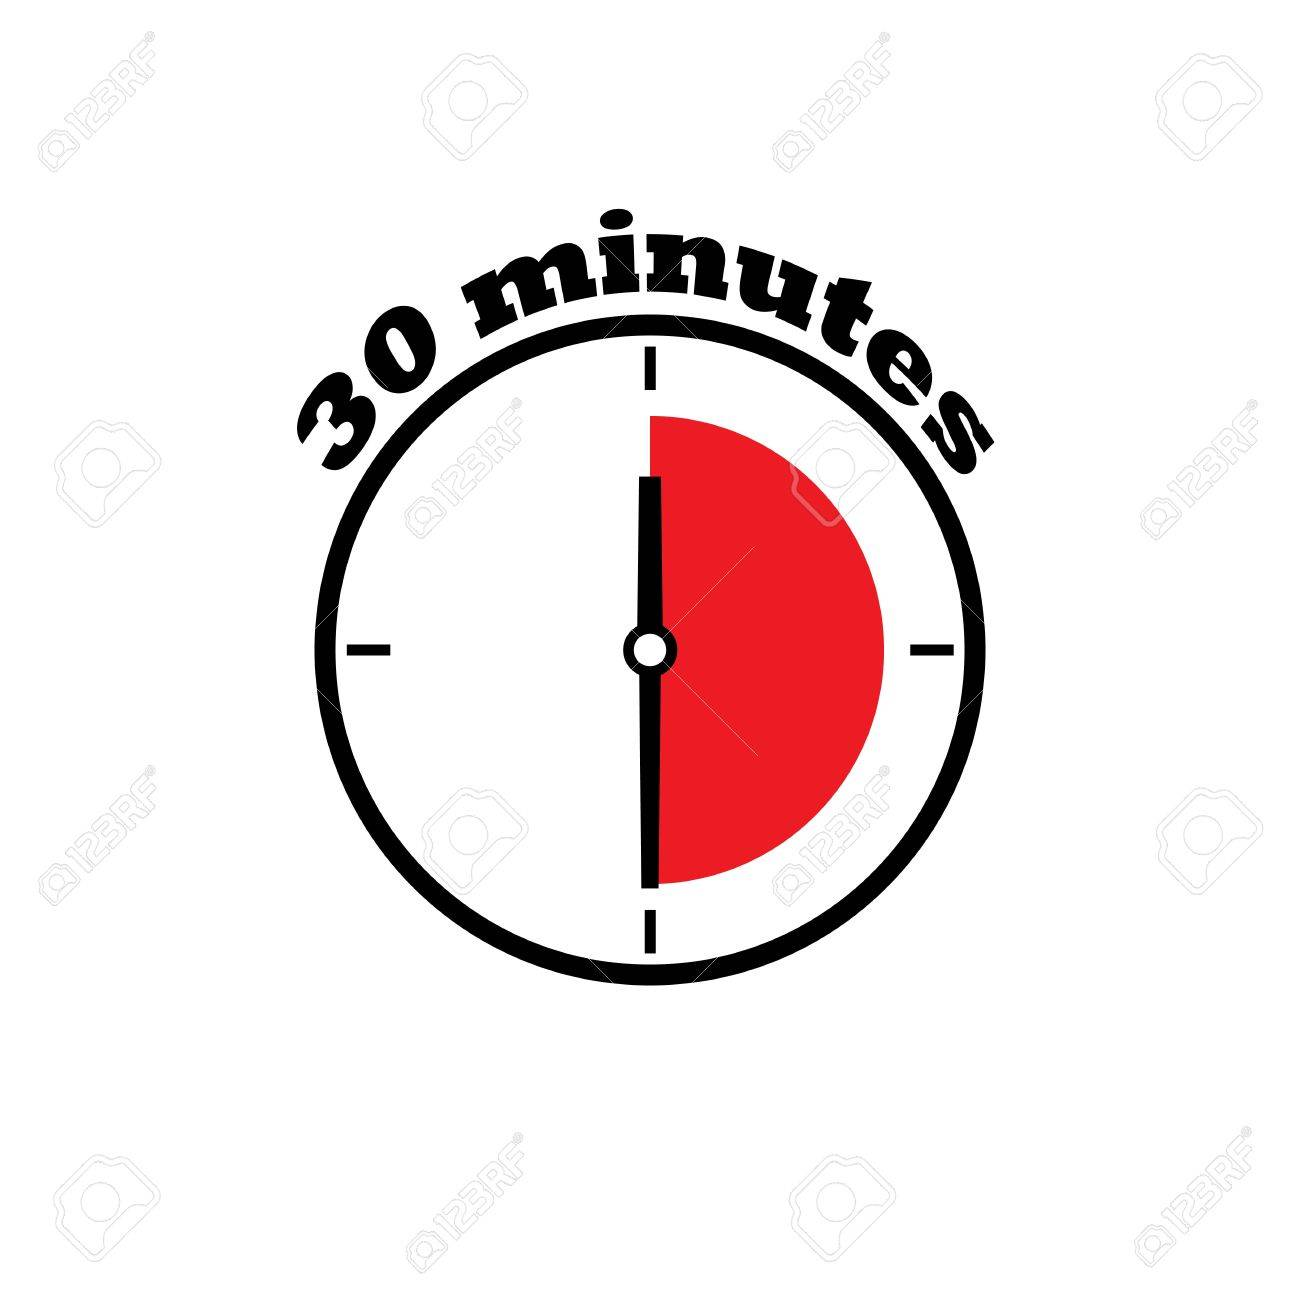 30 minutes clock dial simple flat with red zone royalty free 30 minutes clock dial simple flat with red zone stock vector 83853821 publicscrutiny Image collections